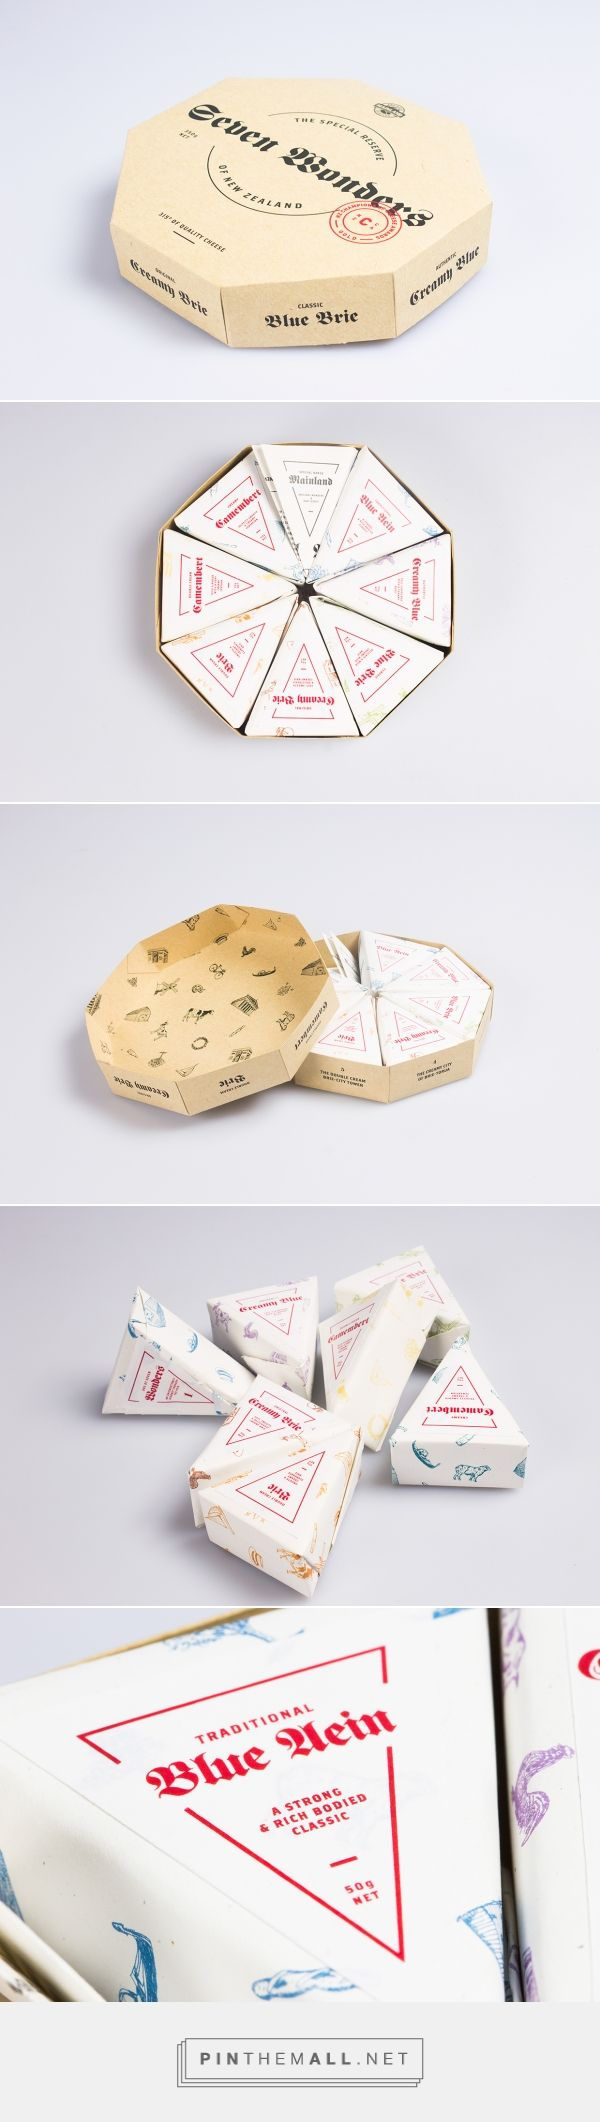 The Design Blog packaging design by Roydon Misseldine Wellington, New Zealand curated by Packaging Diva PD. Mainland Cheese Seven Wonders of New Zealand, taking you from the 'The Creamy Fox Blue glaciers' all the way to 'The Double Cream Brie–City Tower.